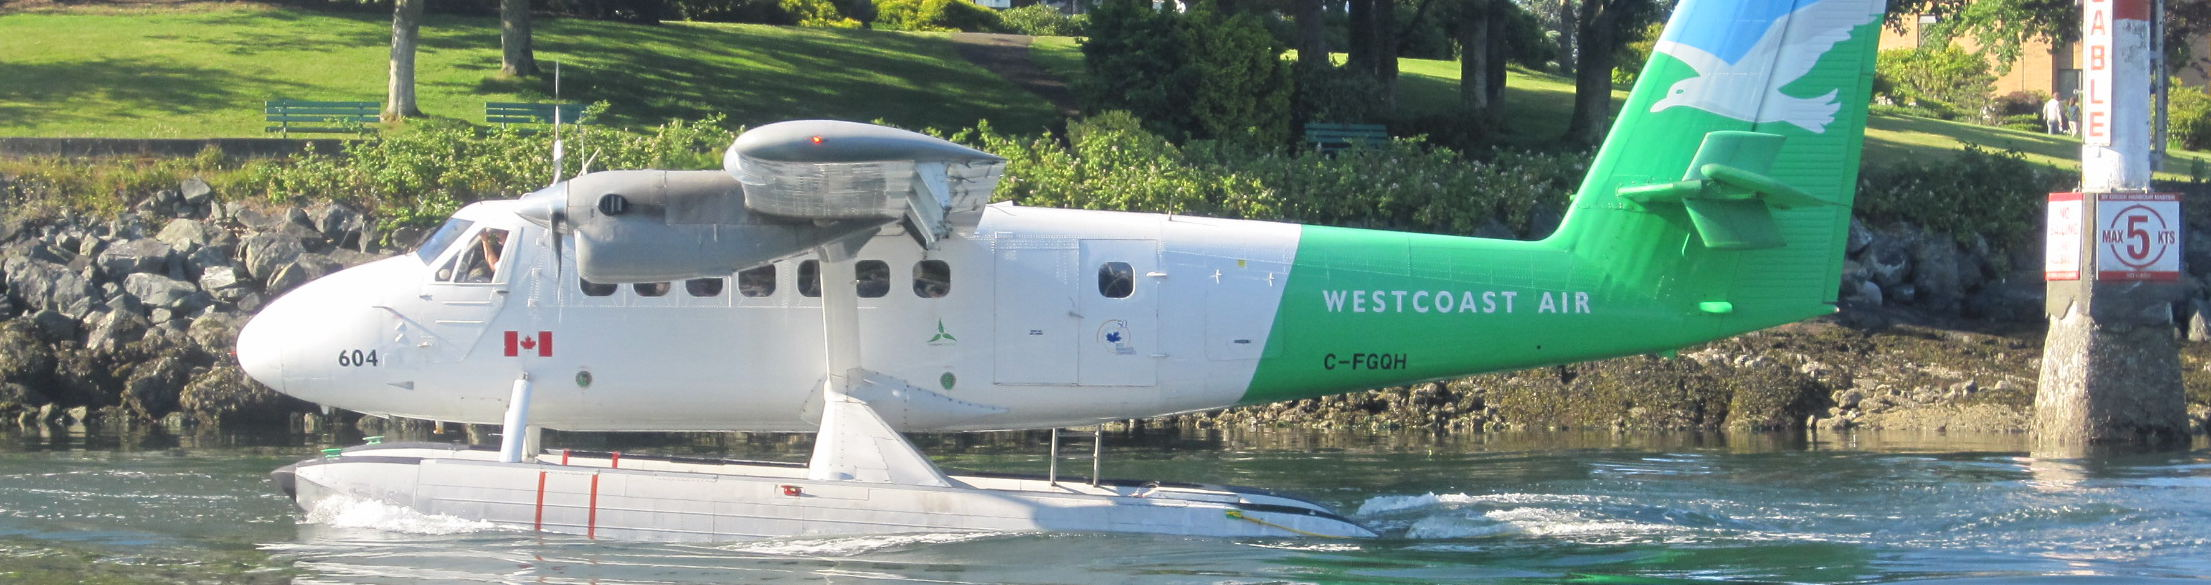 TwinOtter on Floats